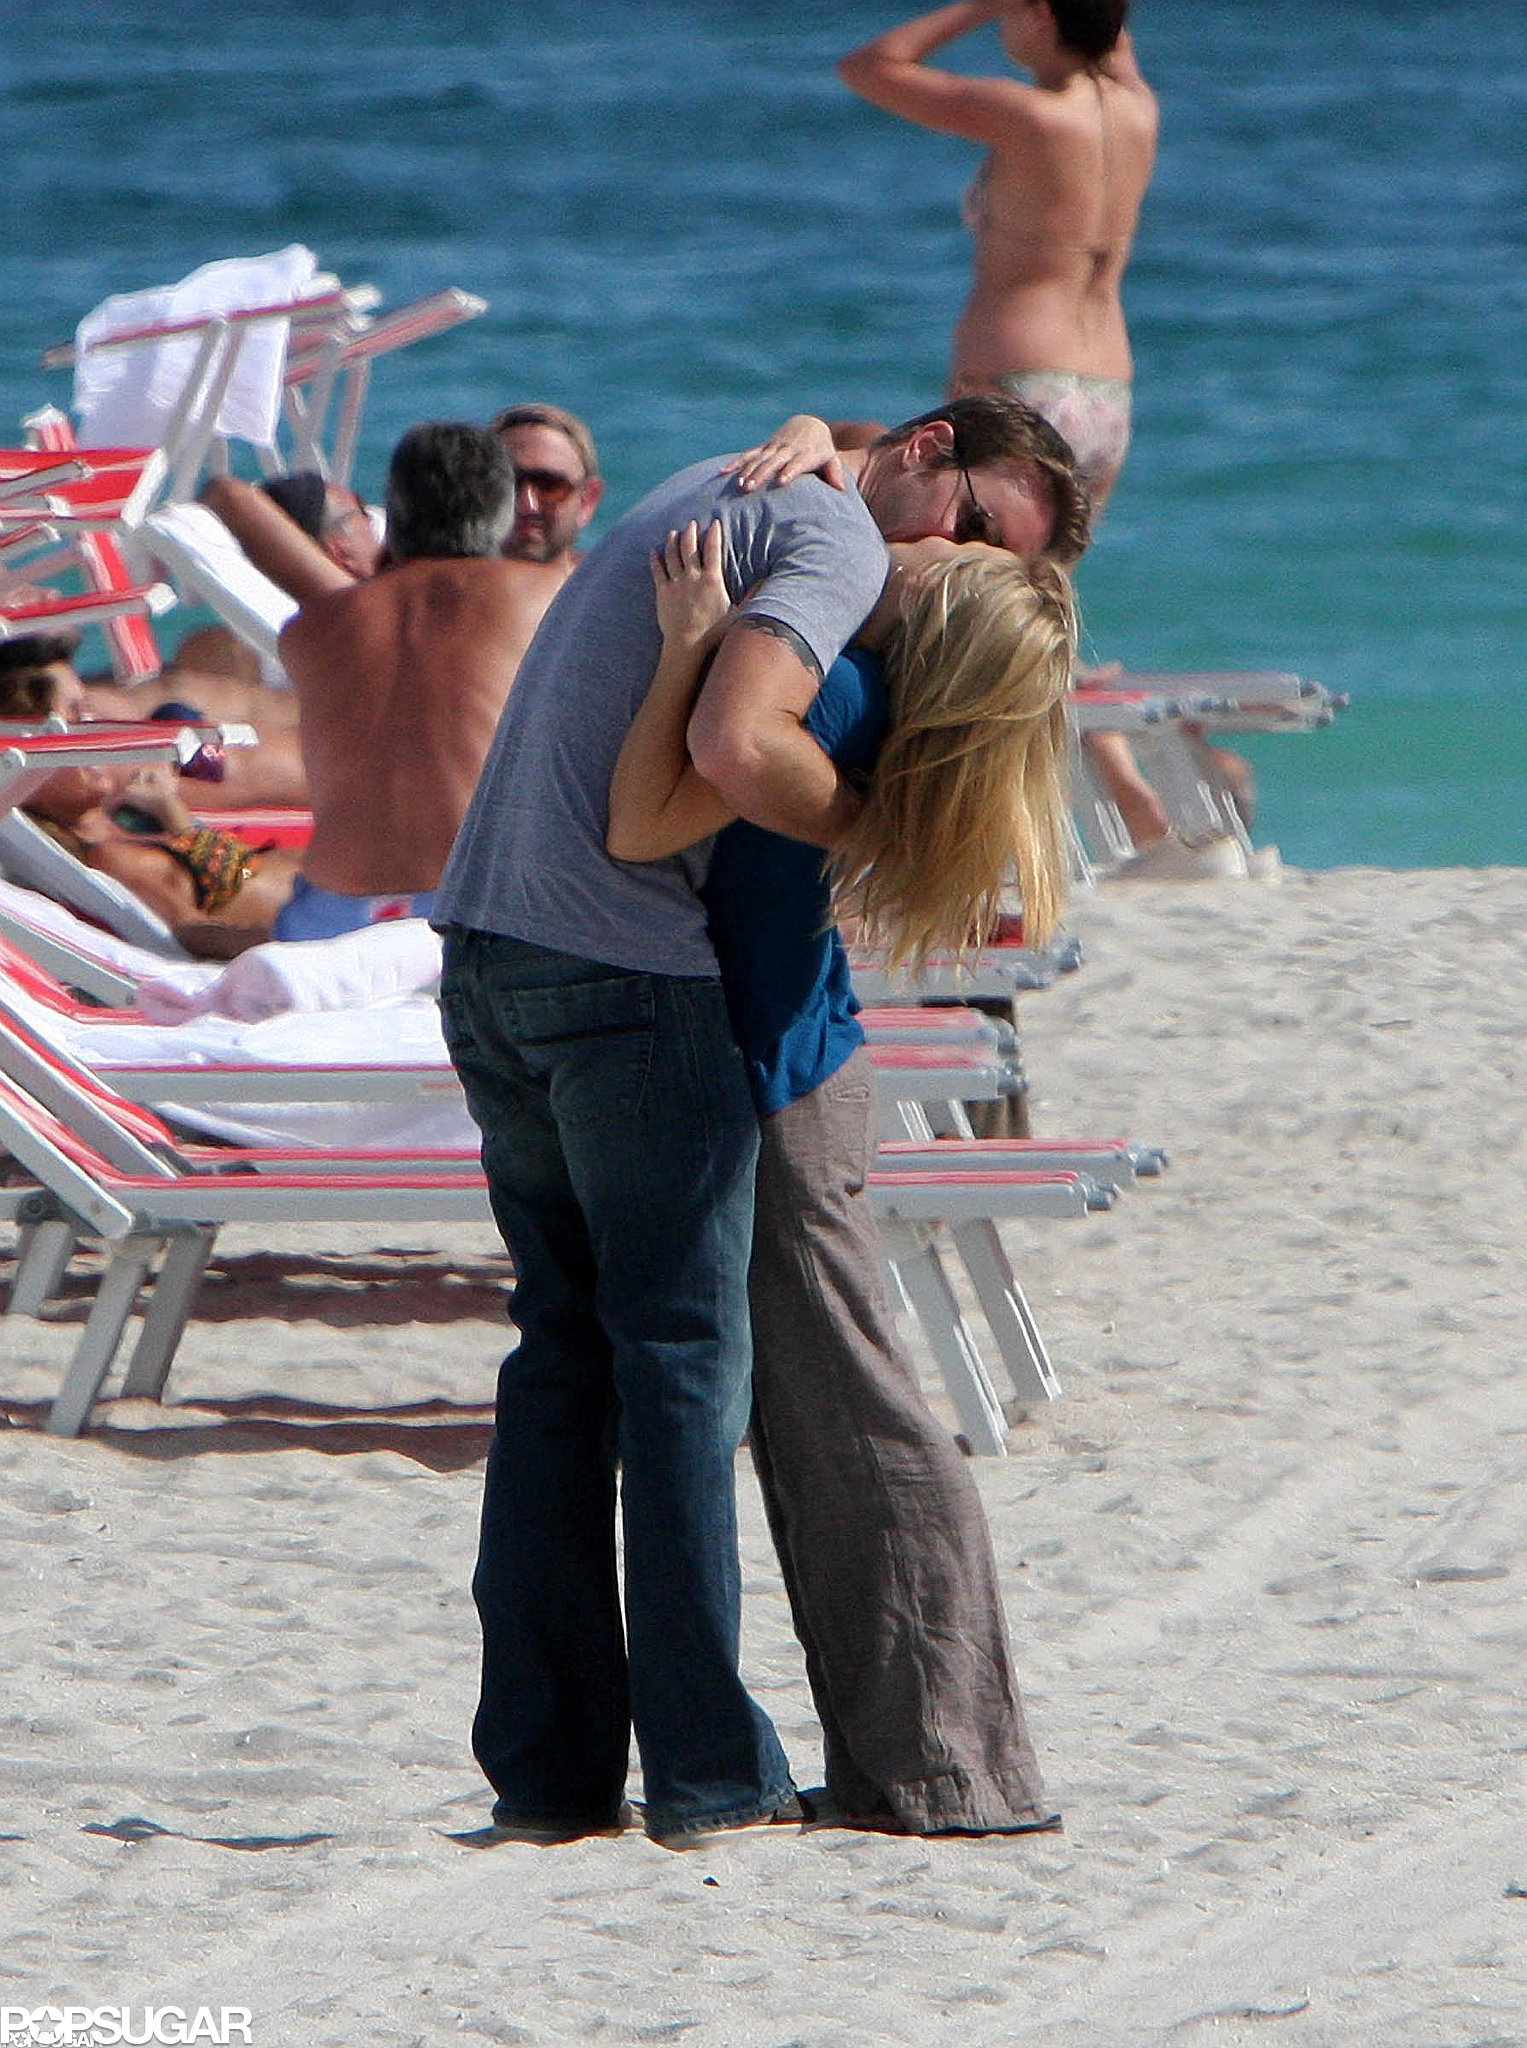 Dax Shepard and Kristen Bell hugged and kissed on the beach in Miami in January 2008.